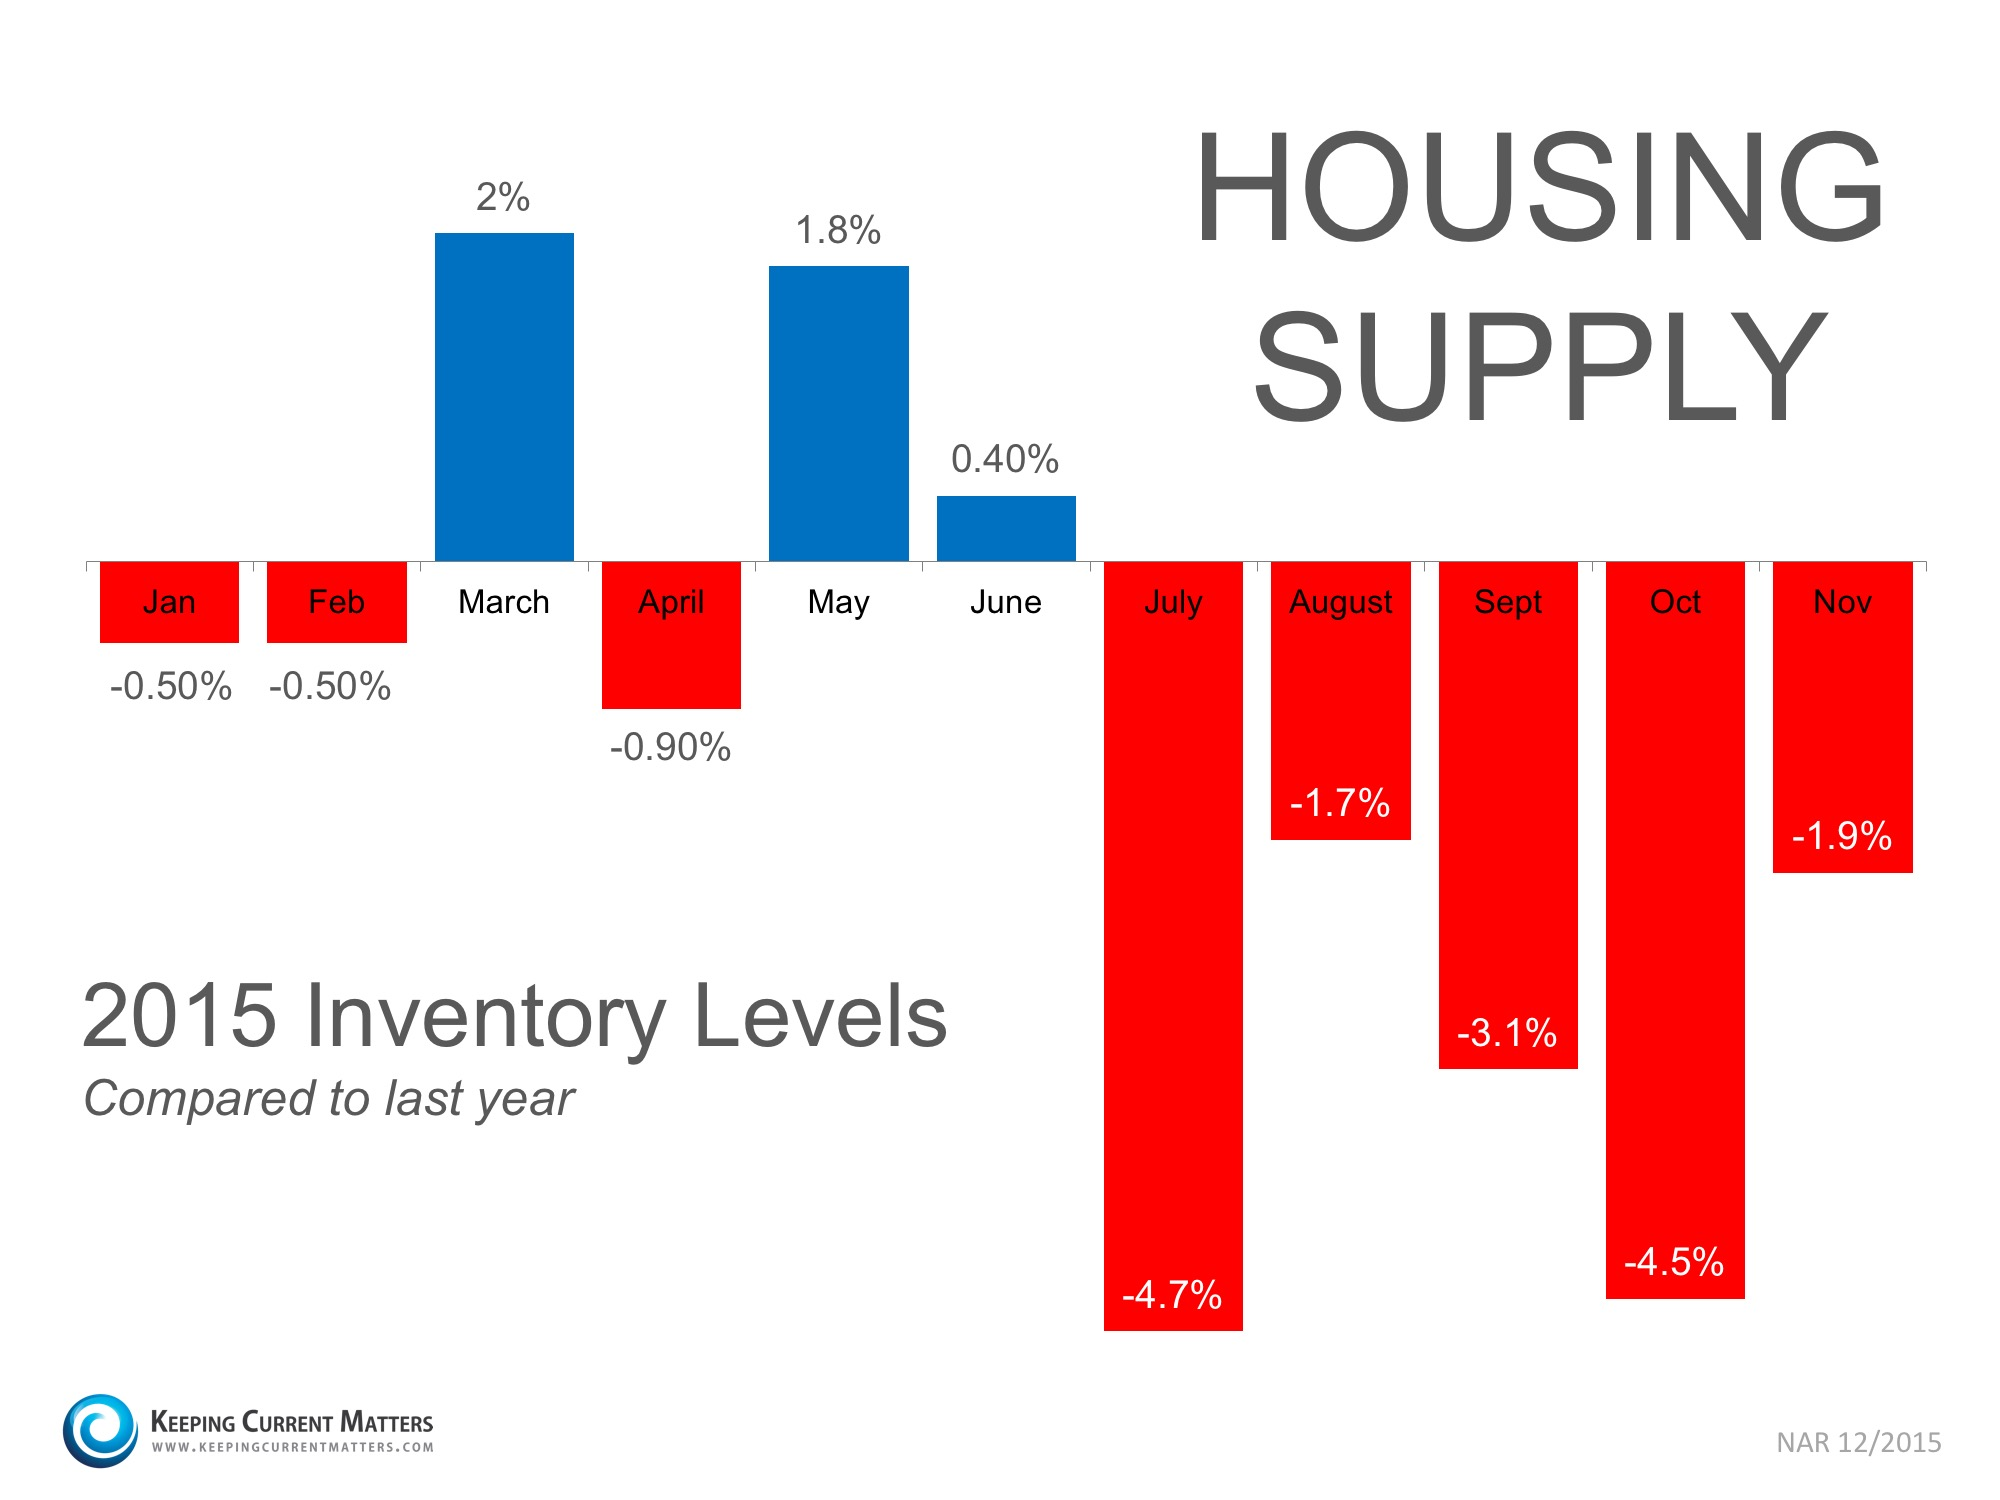 Housing Supply Year-Over-Year | Keeping Current Matters